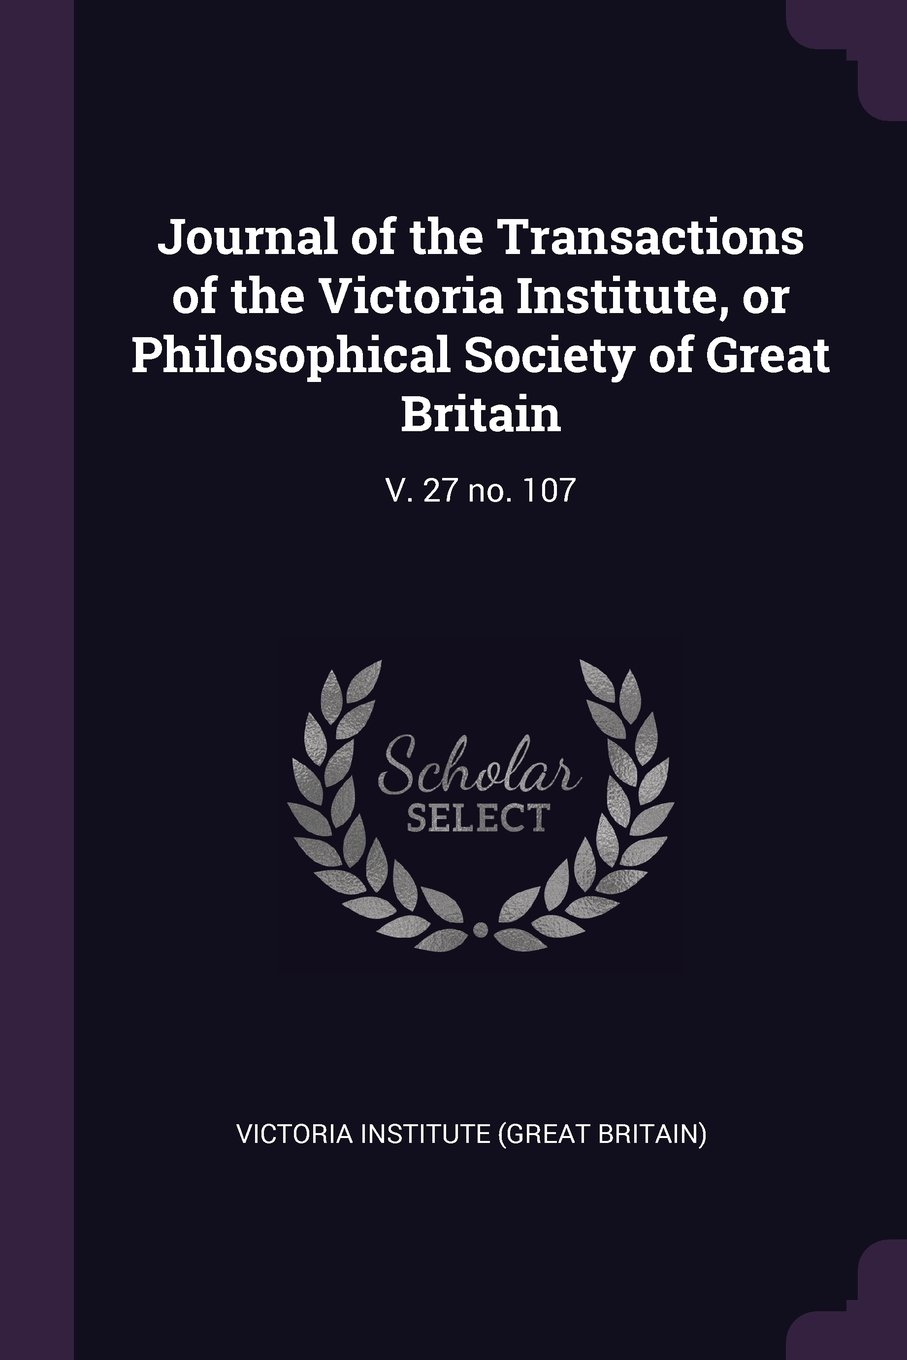 Journal of the Transactions of the Victoria Institute, or Philosophical Society of Great Britain: V. 27 No. 107 pdf